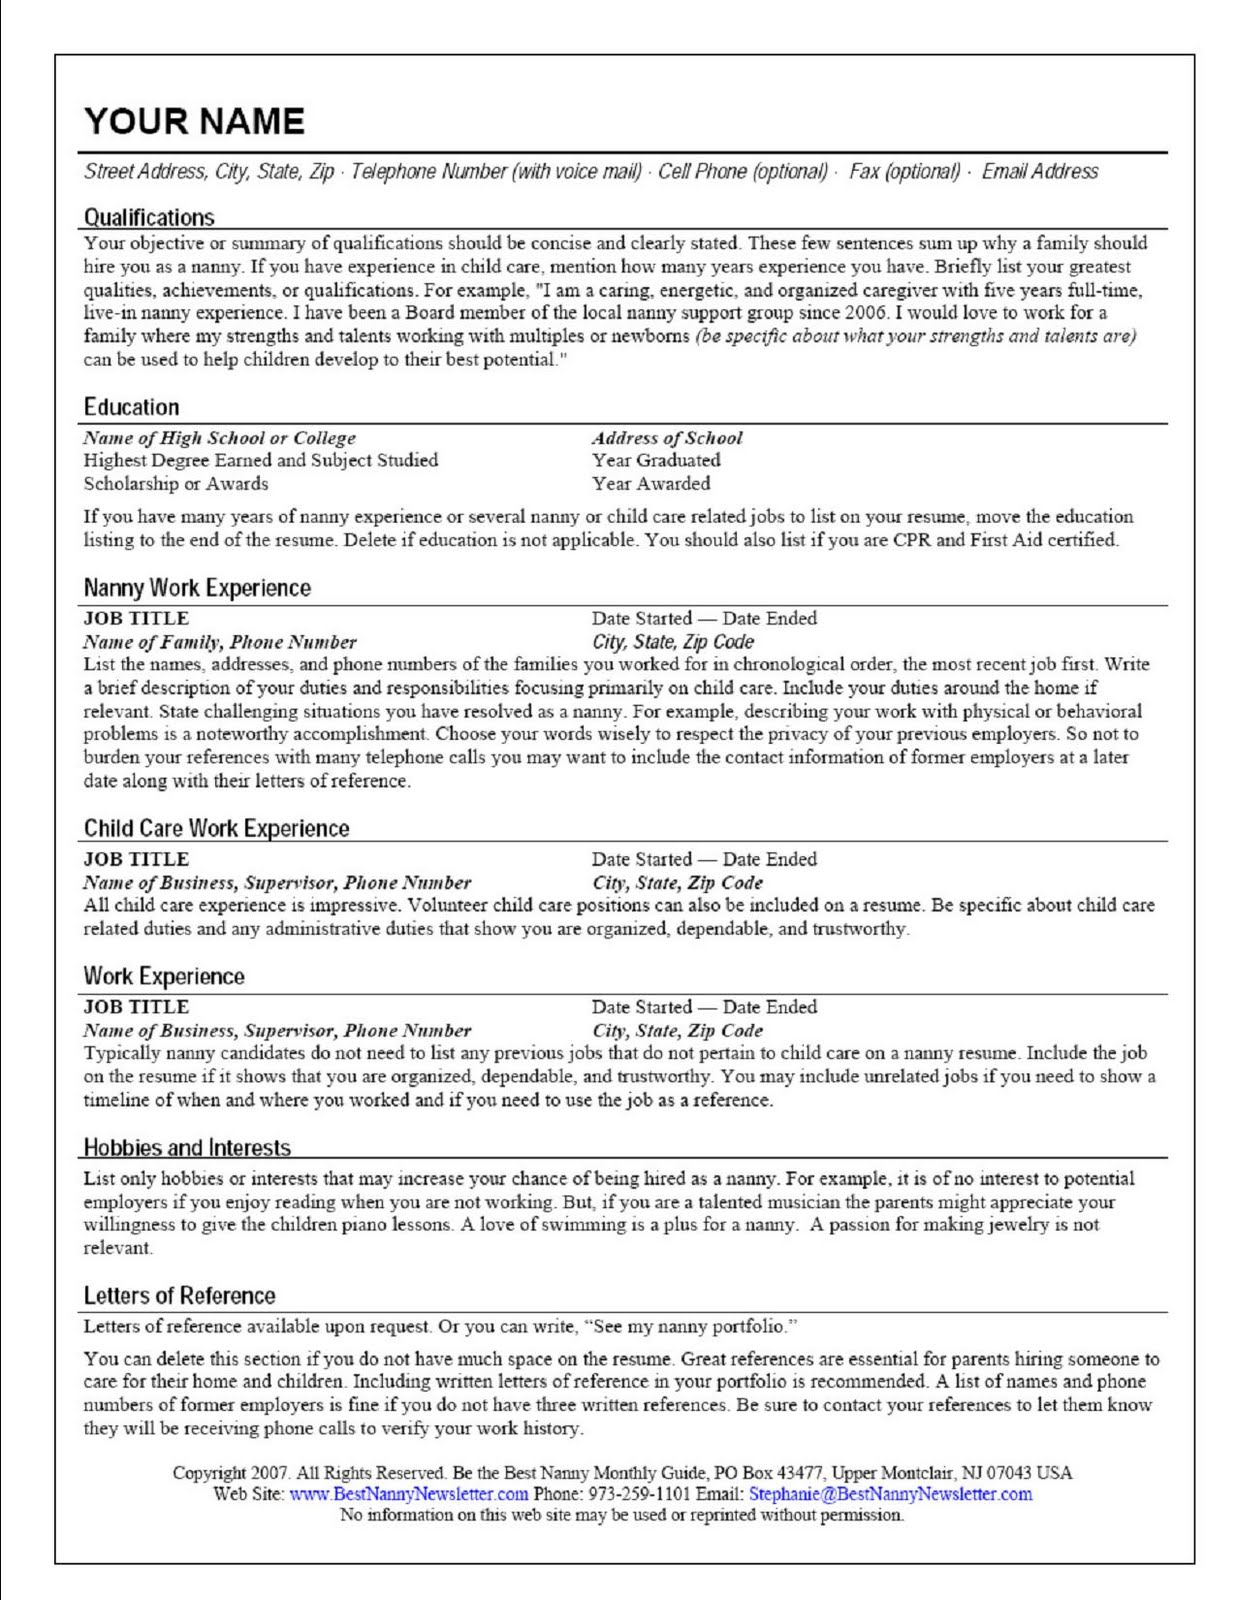 Nanny Resume Example time nanny resume sample my perfect resume ctvgfge resume de82rpb6 resume for nanny 08052017 The Standout Nanny Resume